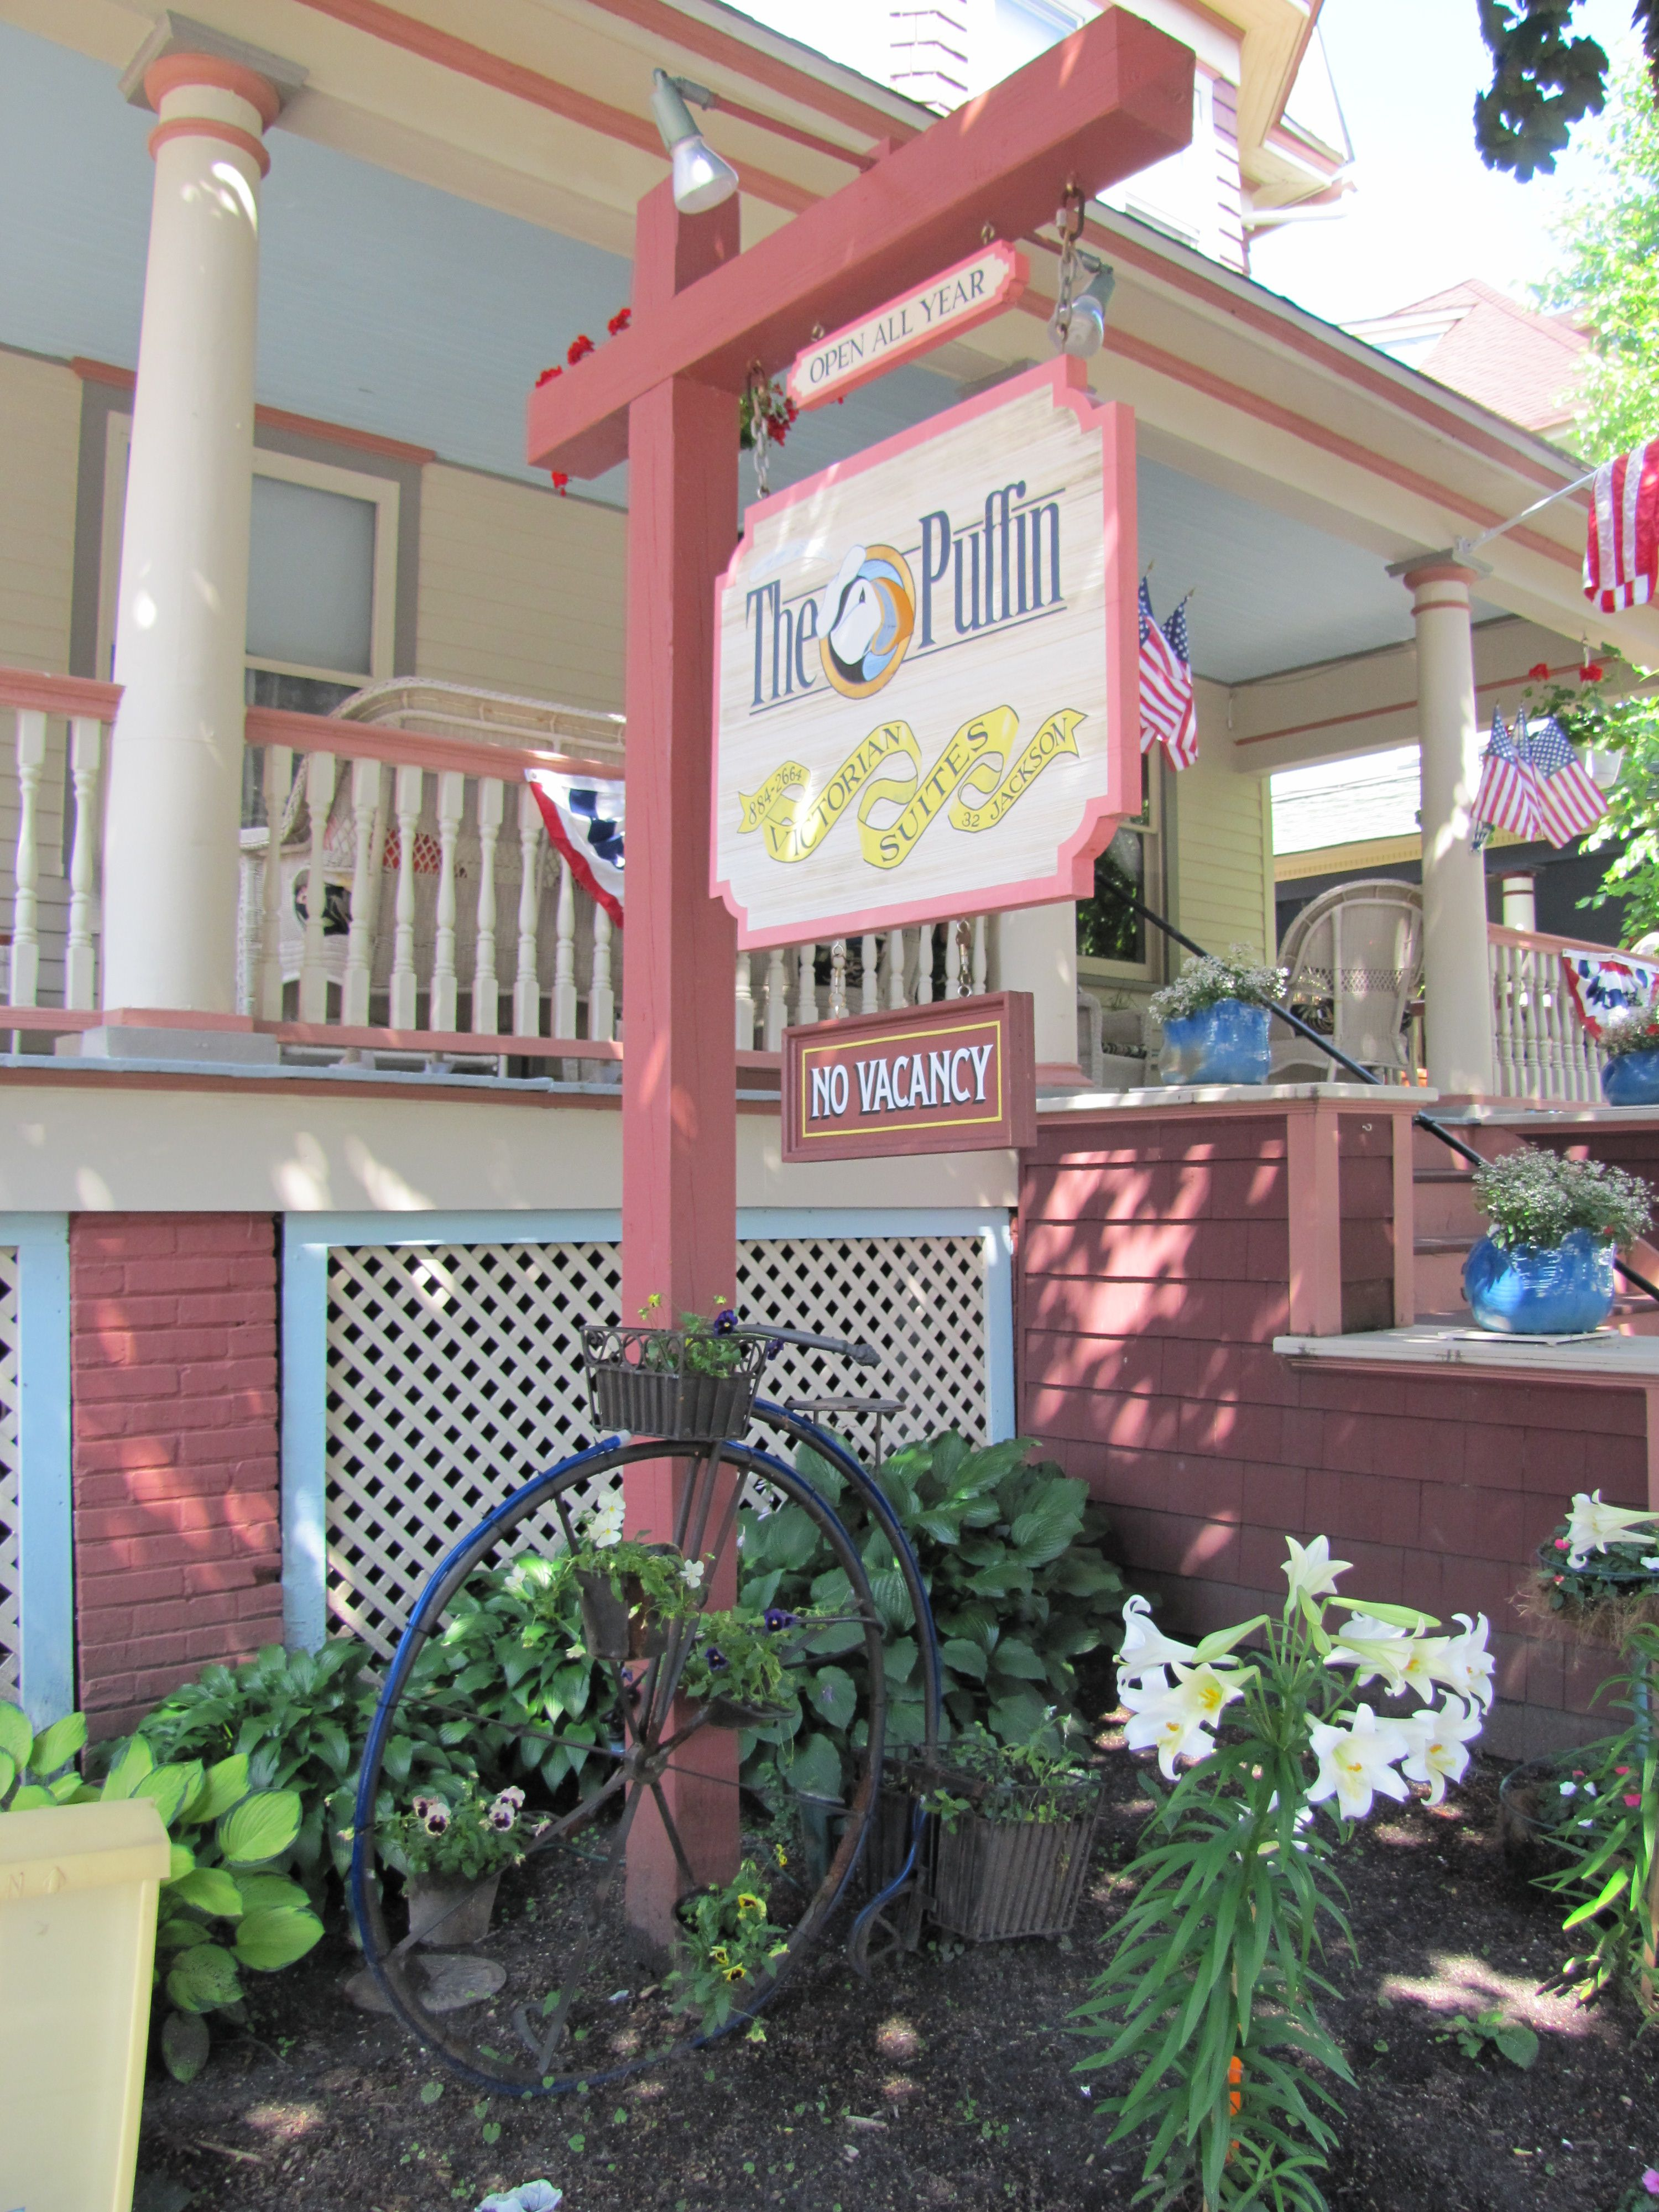 The Puffin bed and breakfast Cape May Cape may